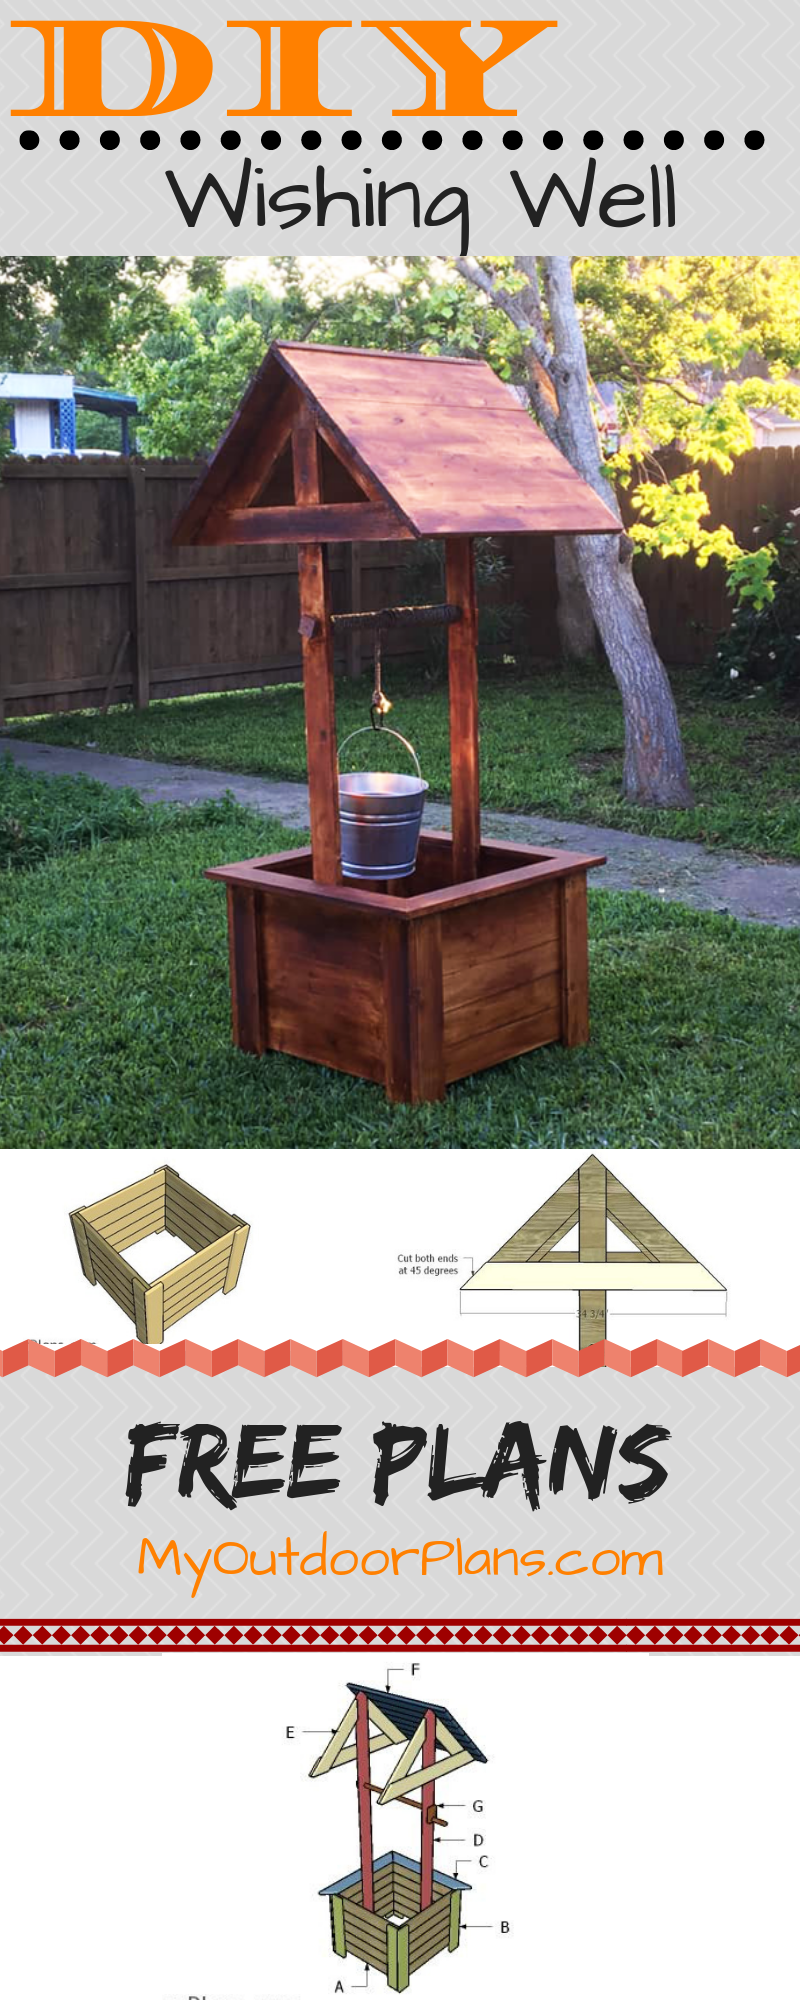 How To Build A Wishing Well Diy Wishing Wells Wishing Well Plans Simple Woodworking Plans